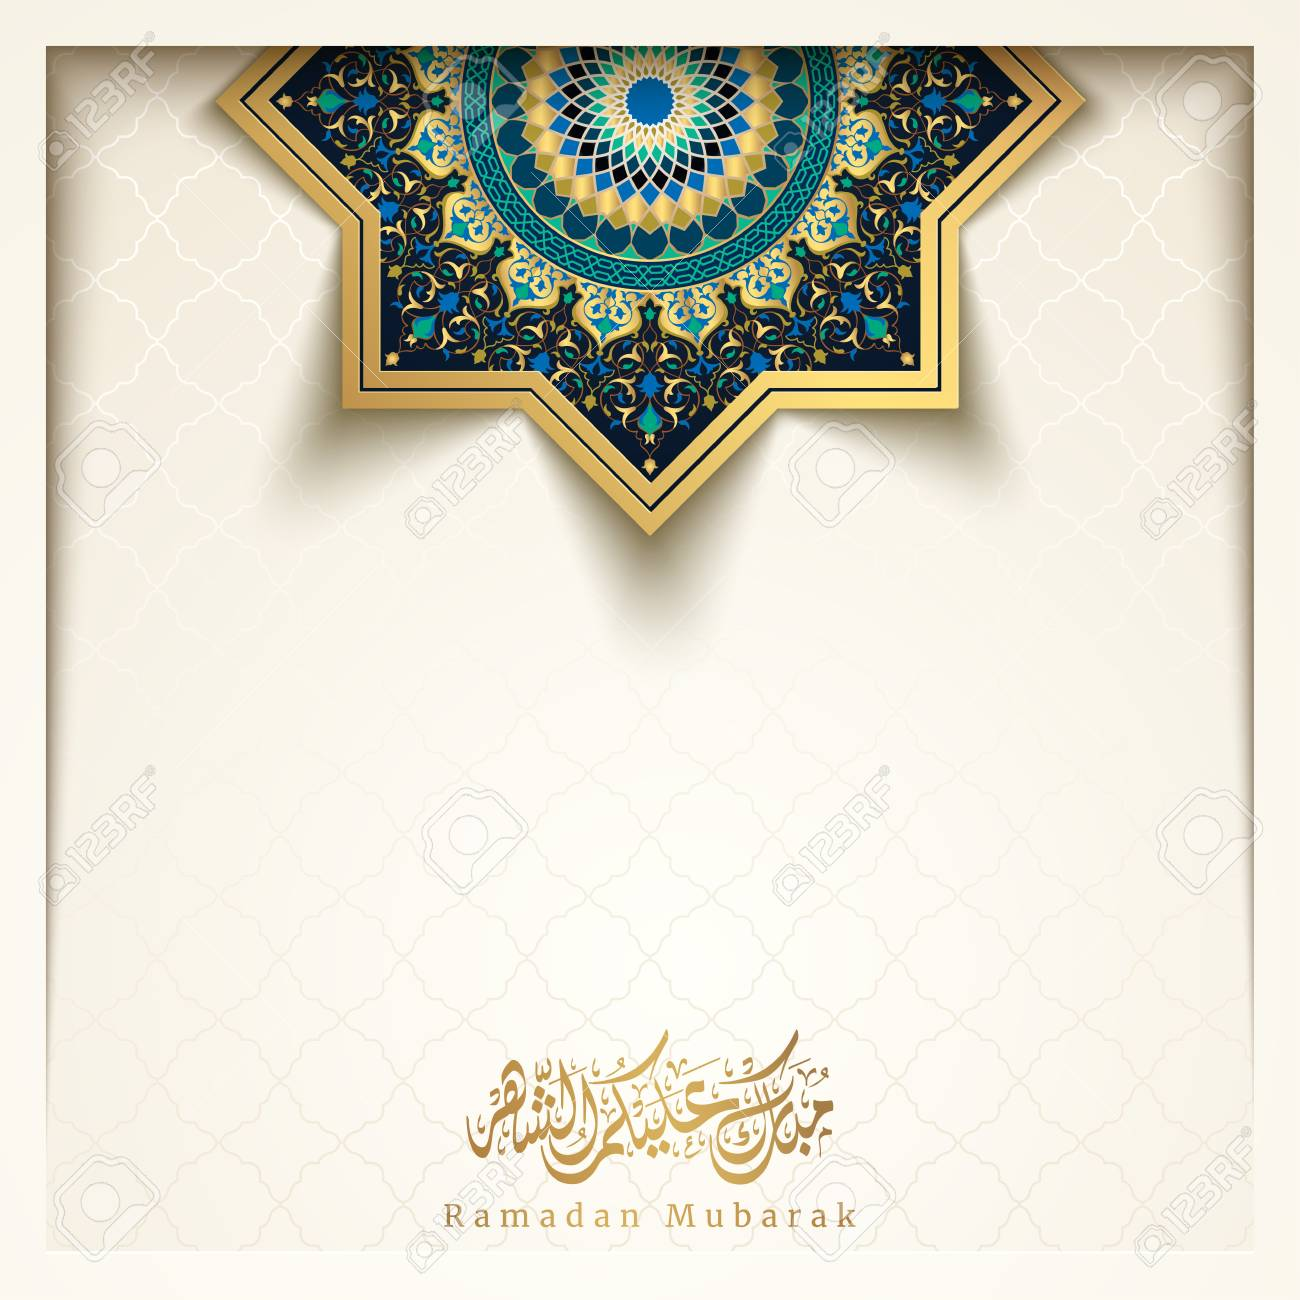 Ramadan Kareem greeting with Arabic floral and geometric pattern moroccoan ornament for islamic banner background - 120855610